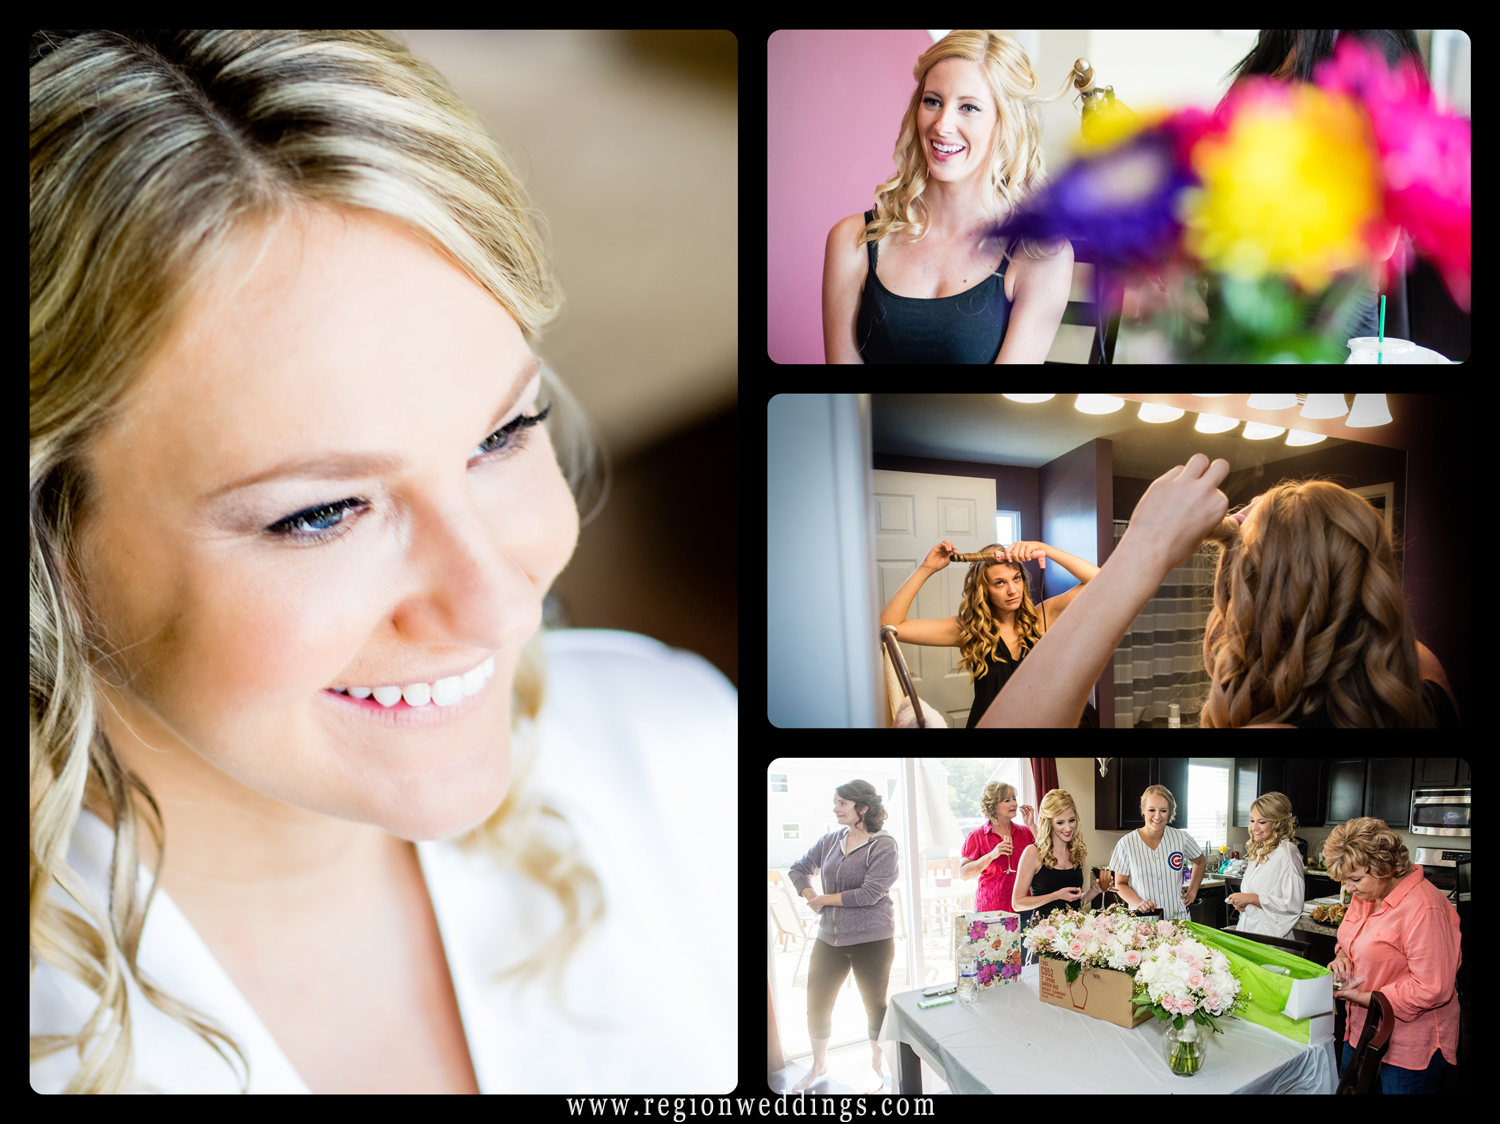 The bride and her bridesmaids get ready for her big day at her home in Crown Point, Indiana.